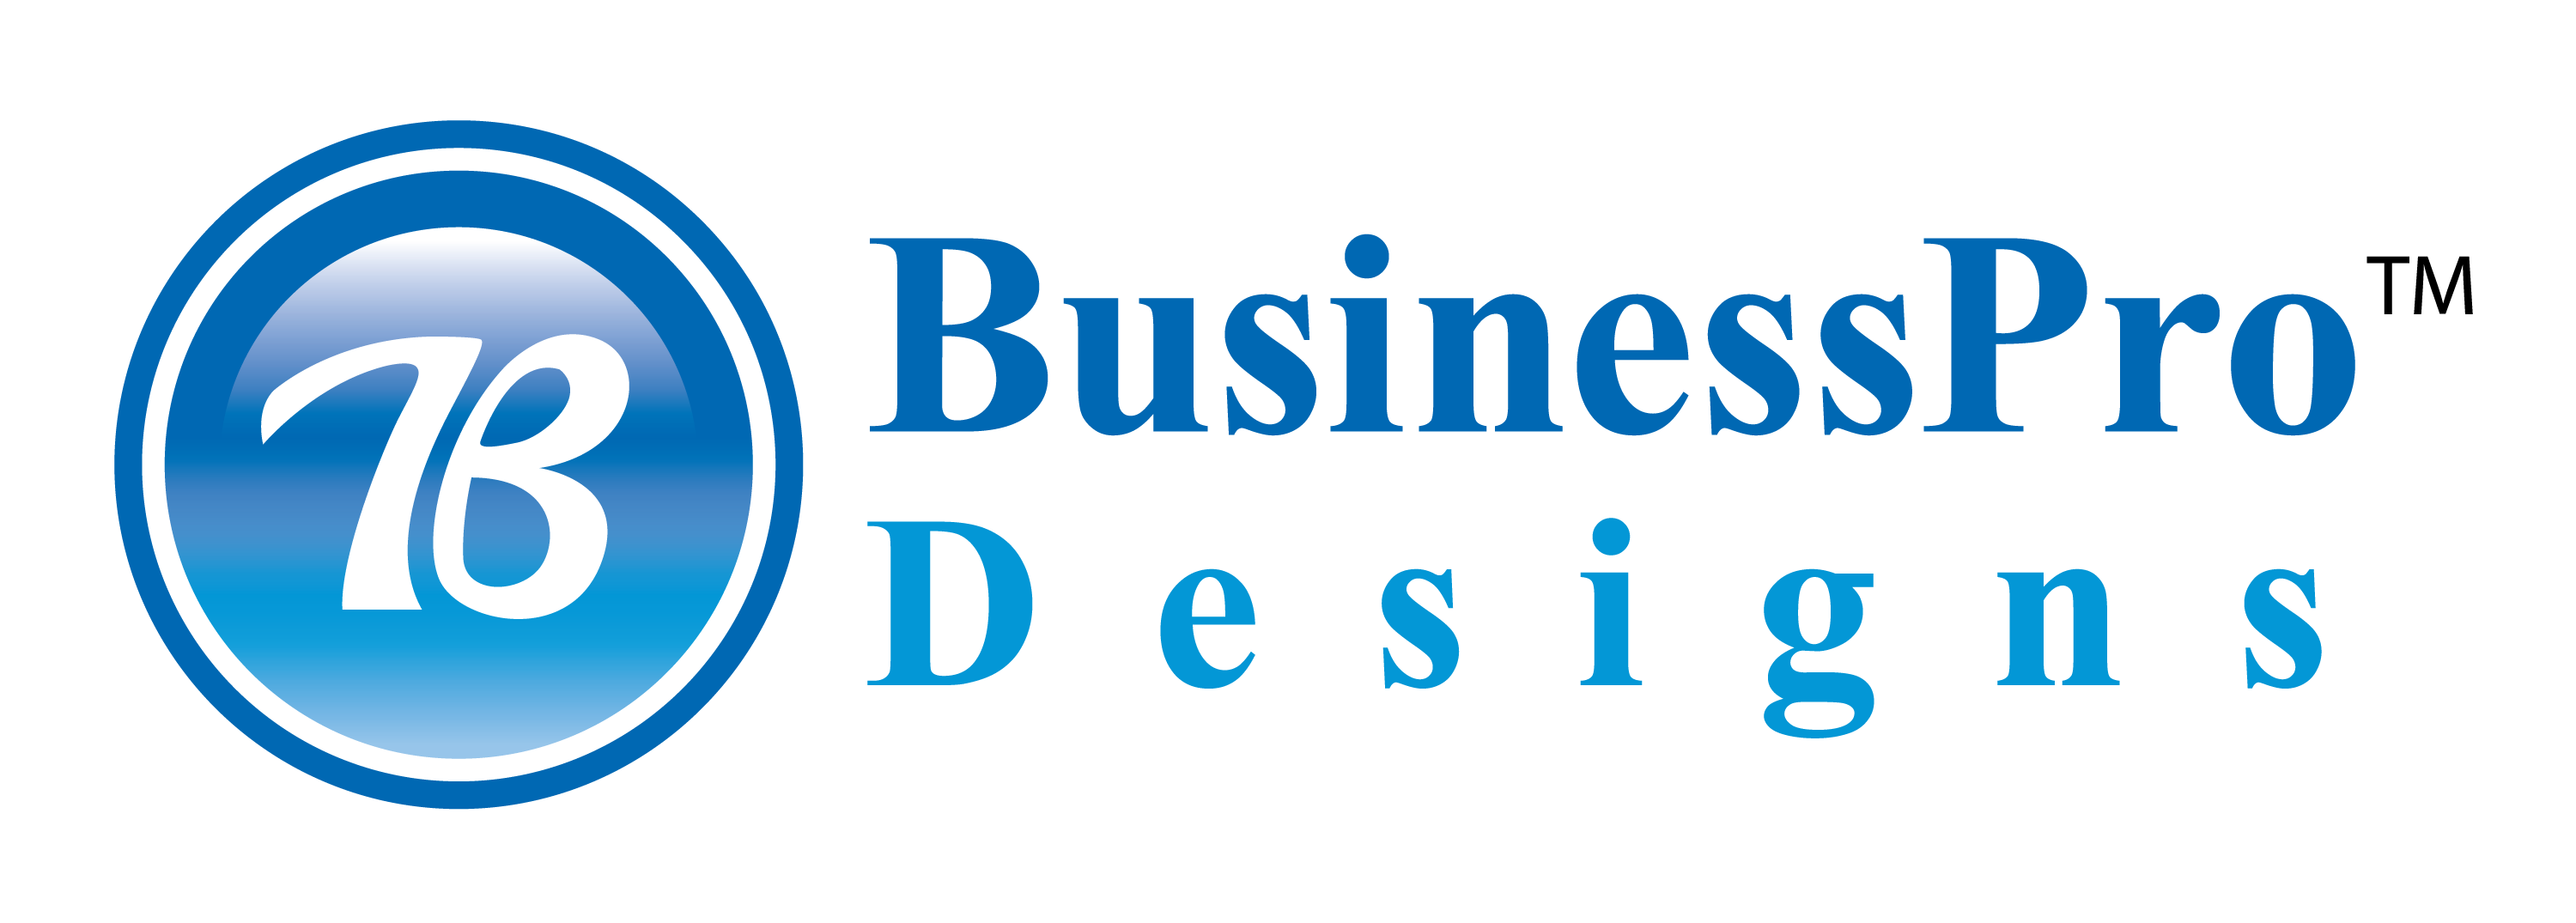 BusinessPro Designs - www.businessprodesigns.com